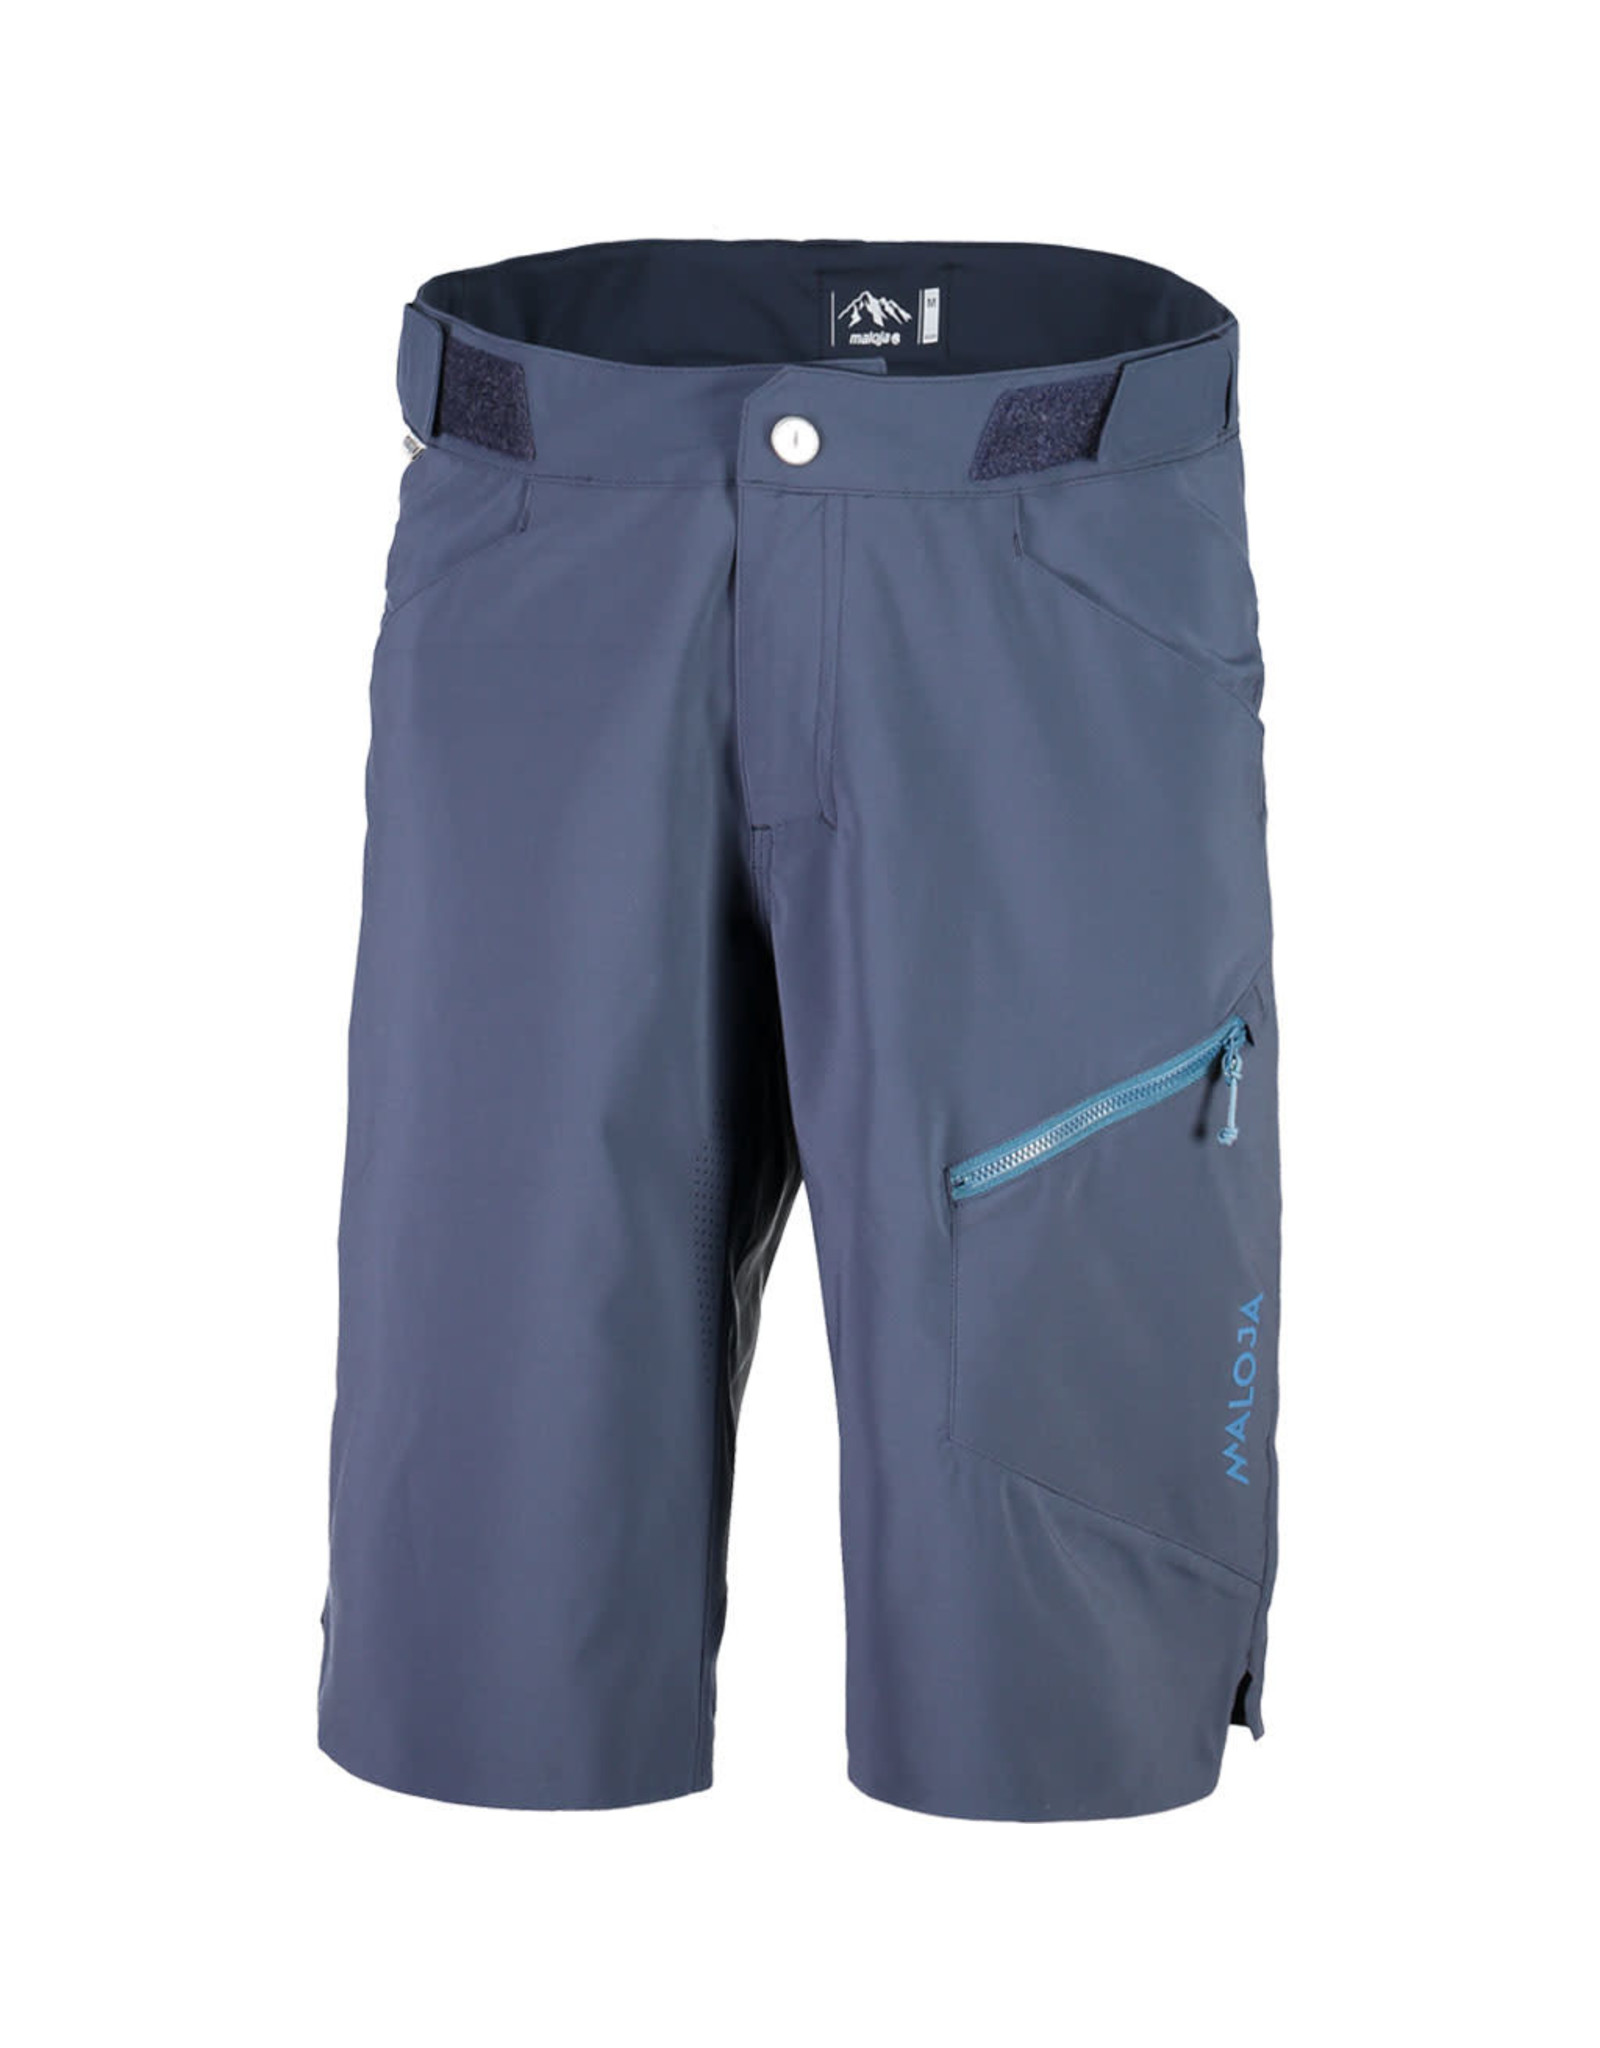 Maloja Mens LuisM Short